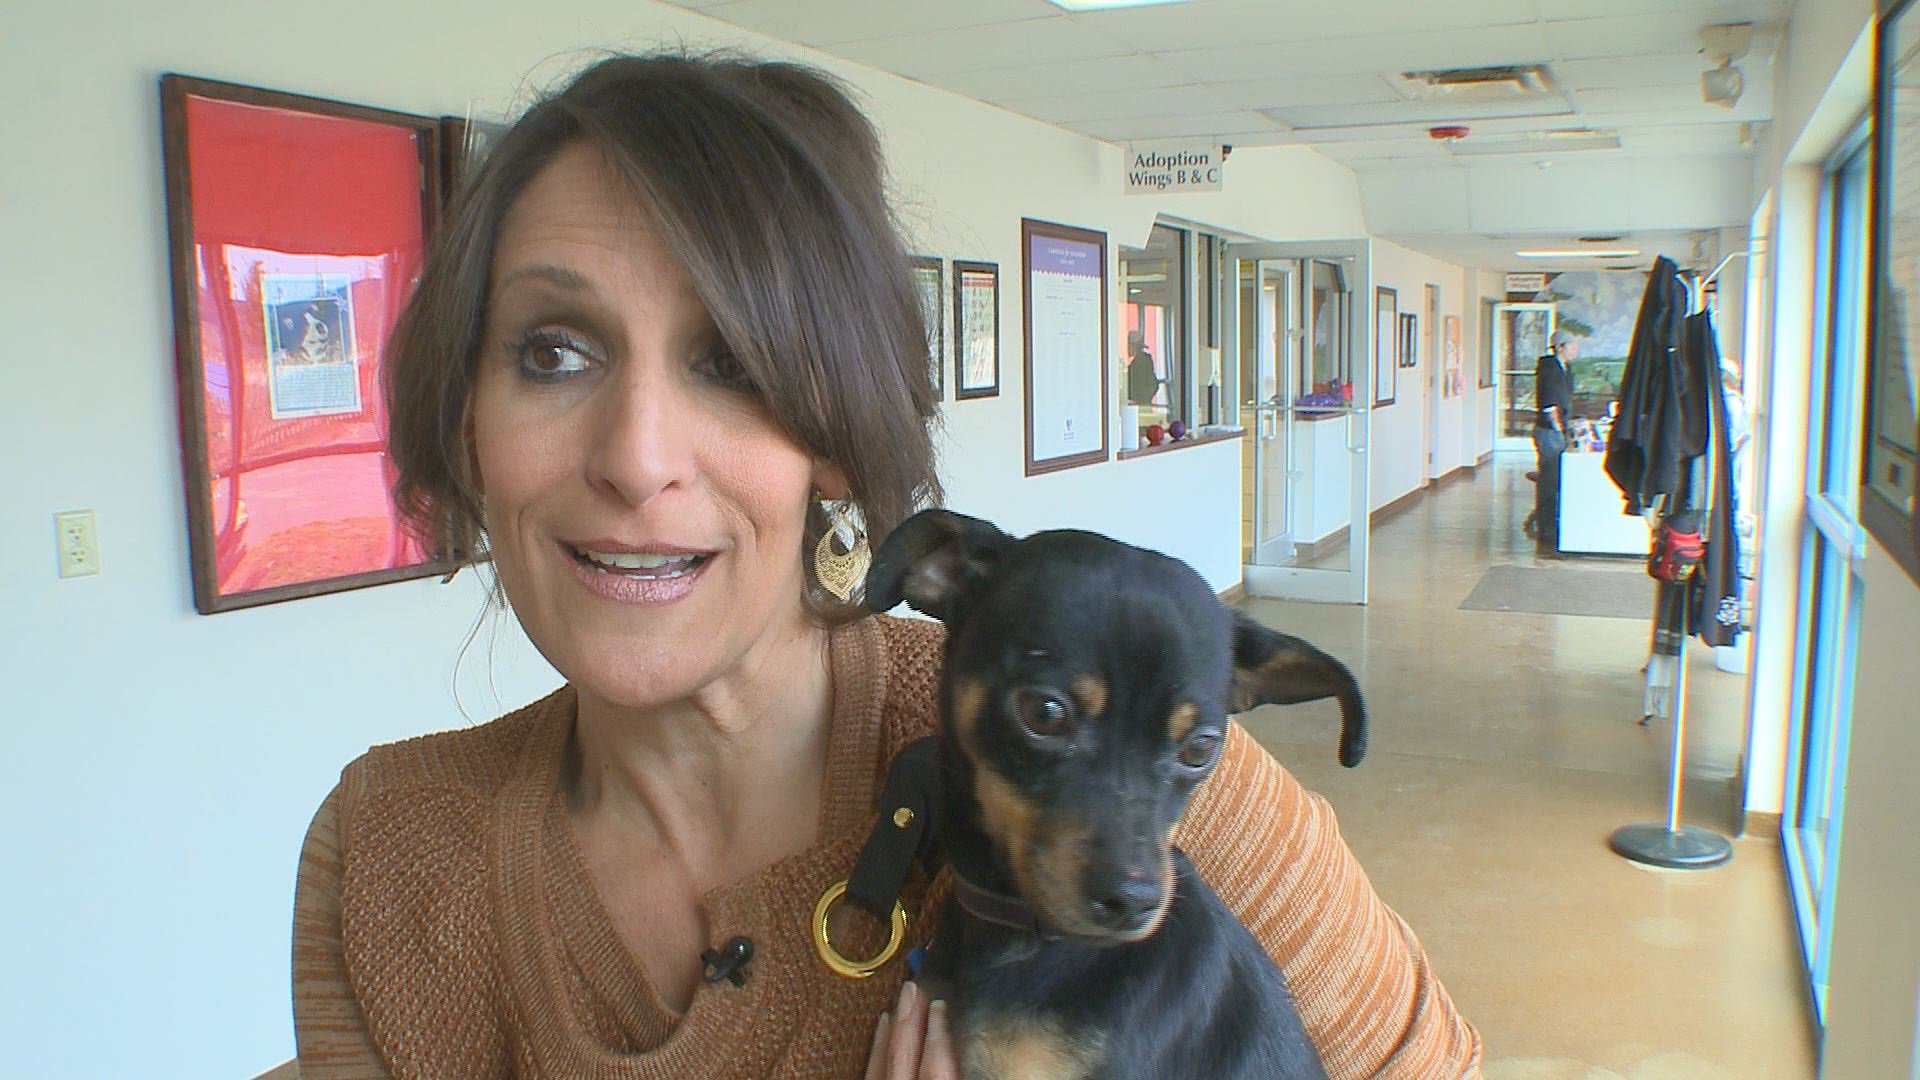 Erie Co Spca Considers Dropping Breed Labels Wgrz Com